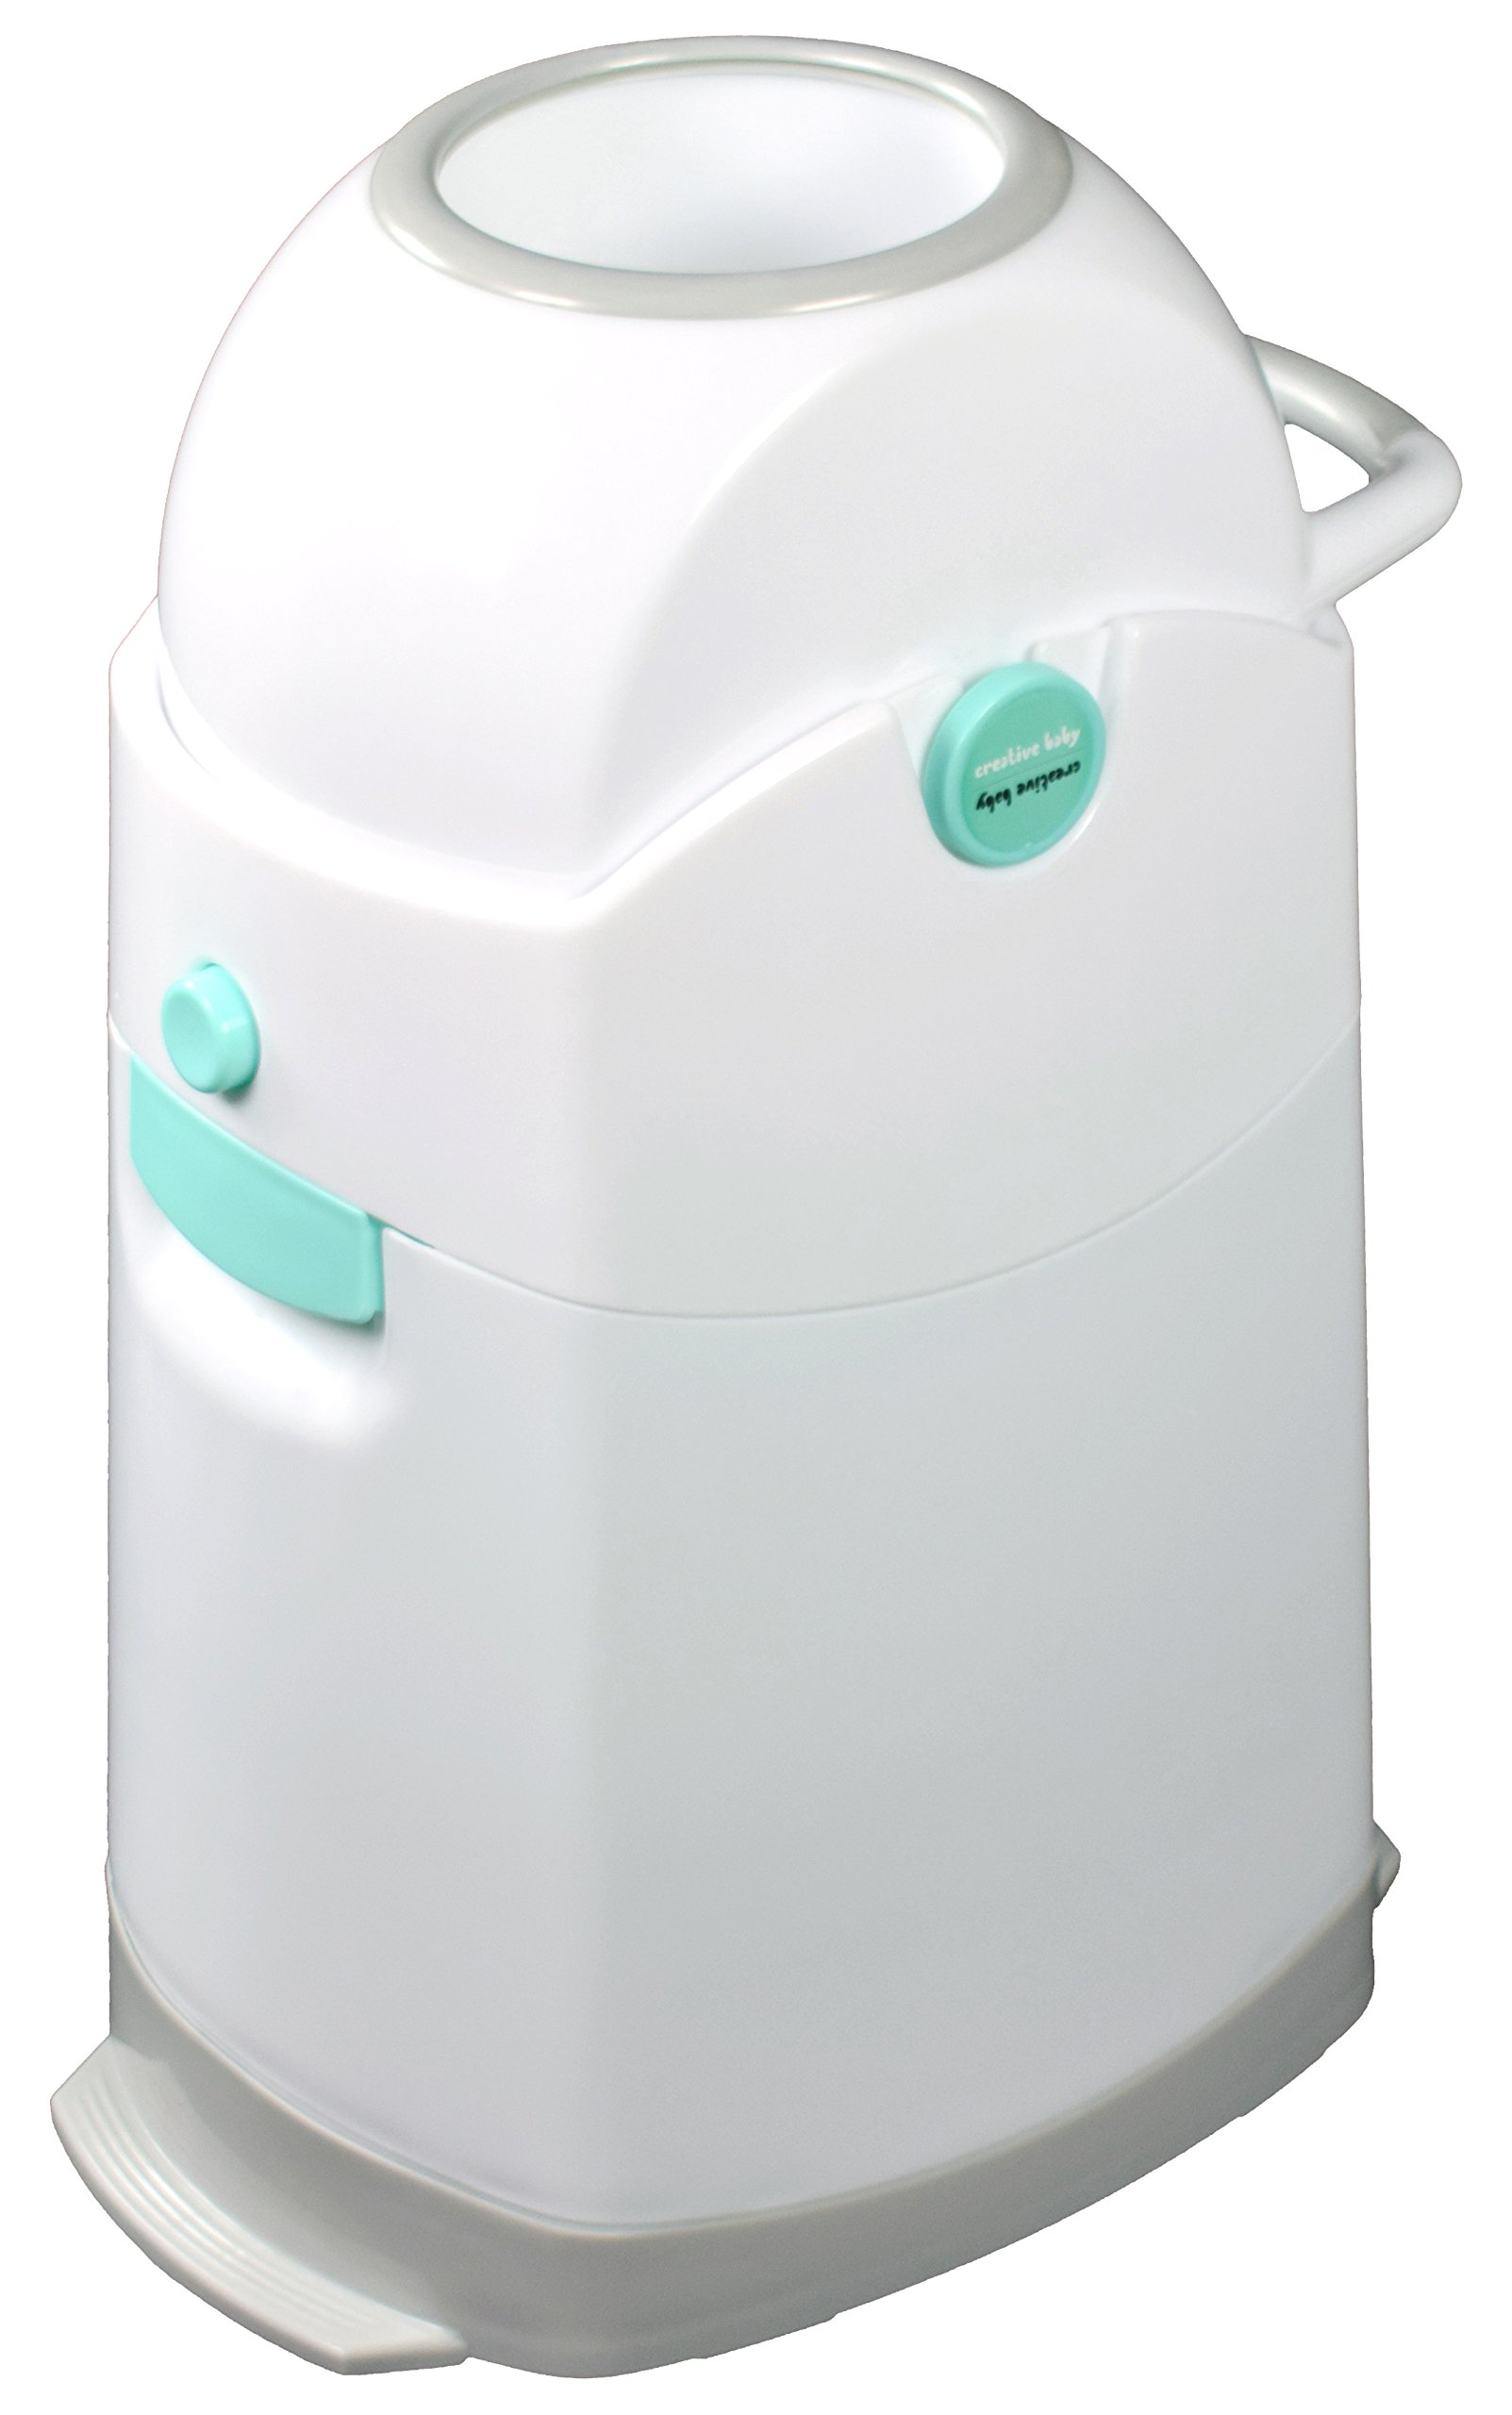 Creative Baby Tidy Diaper Pail, Pearl, Pearl/Blue/White/Gray, One Size by Creative Baby